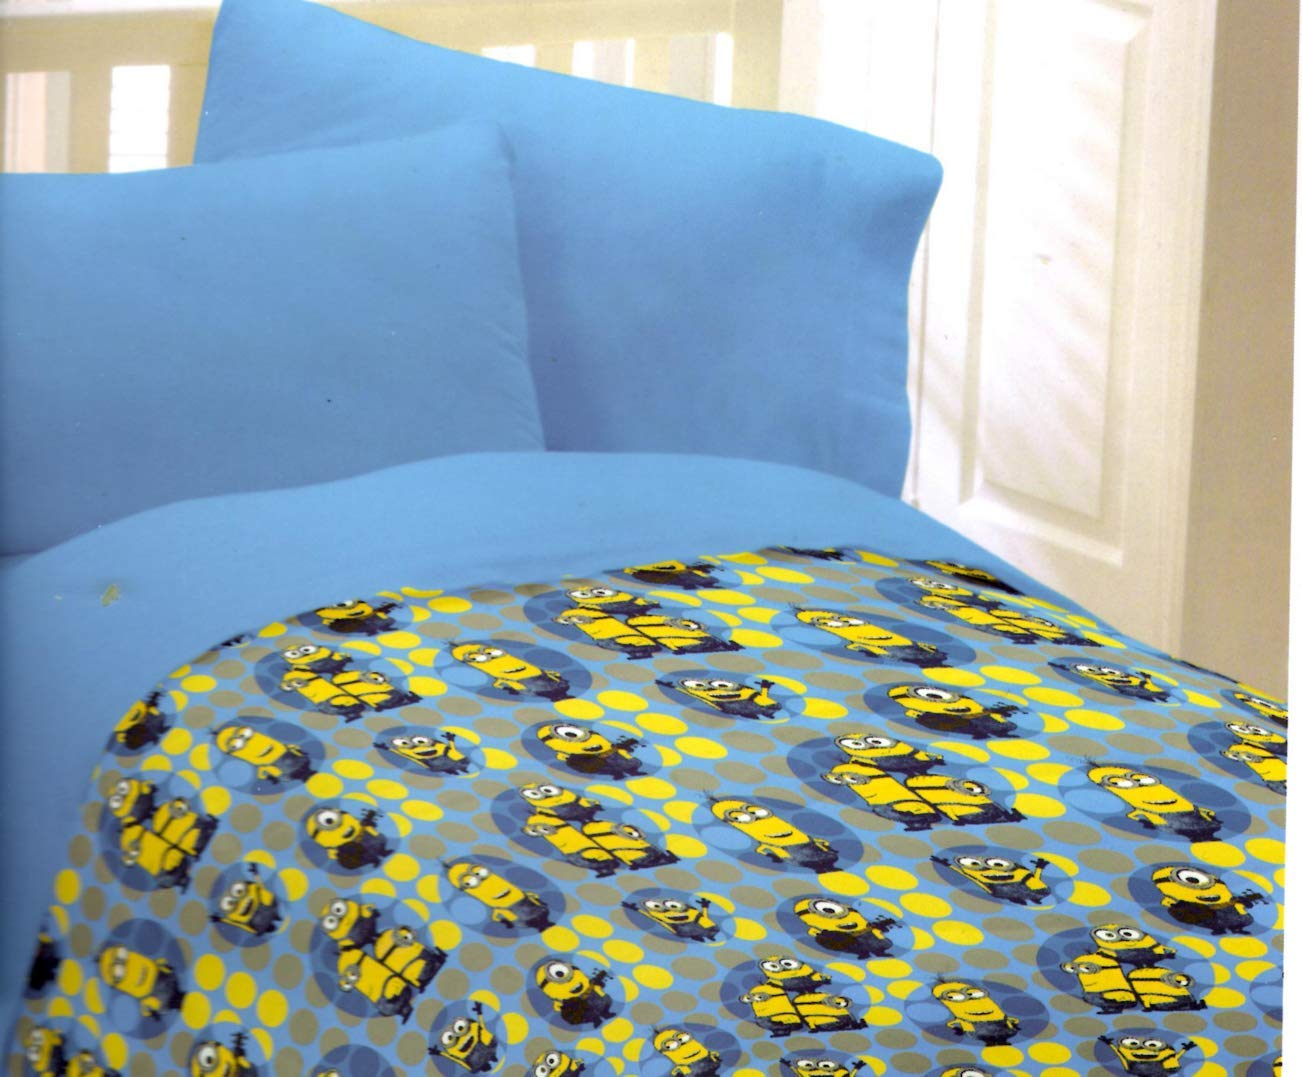 Minions Despicable Me Comforter Dots of Fun Twin